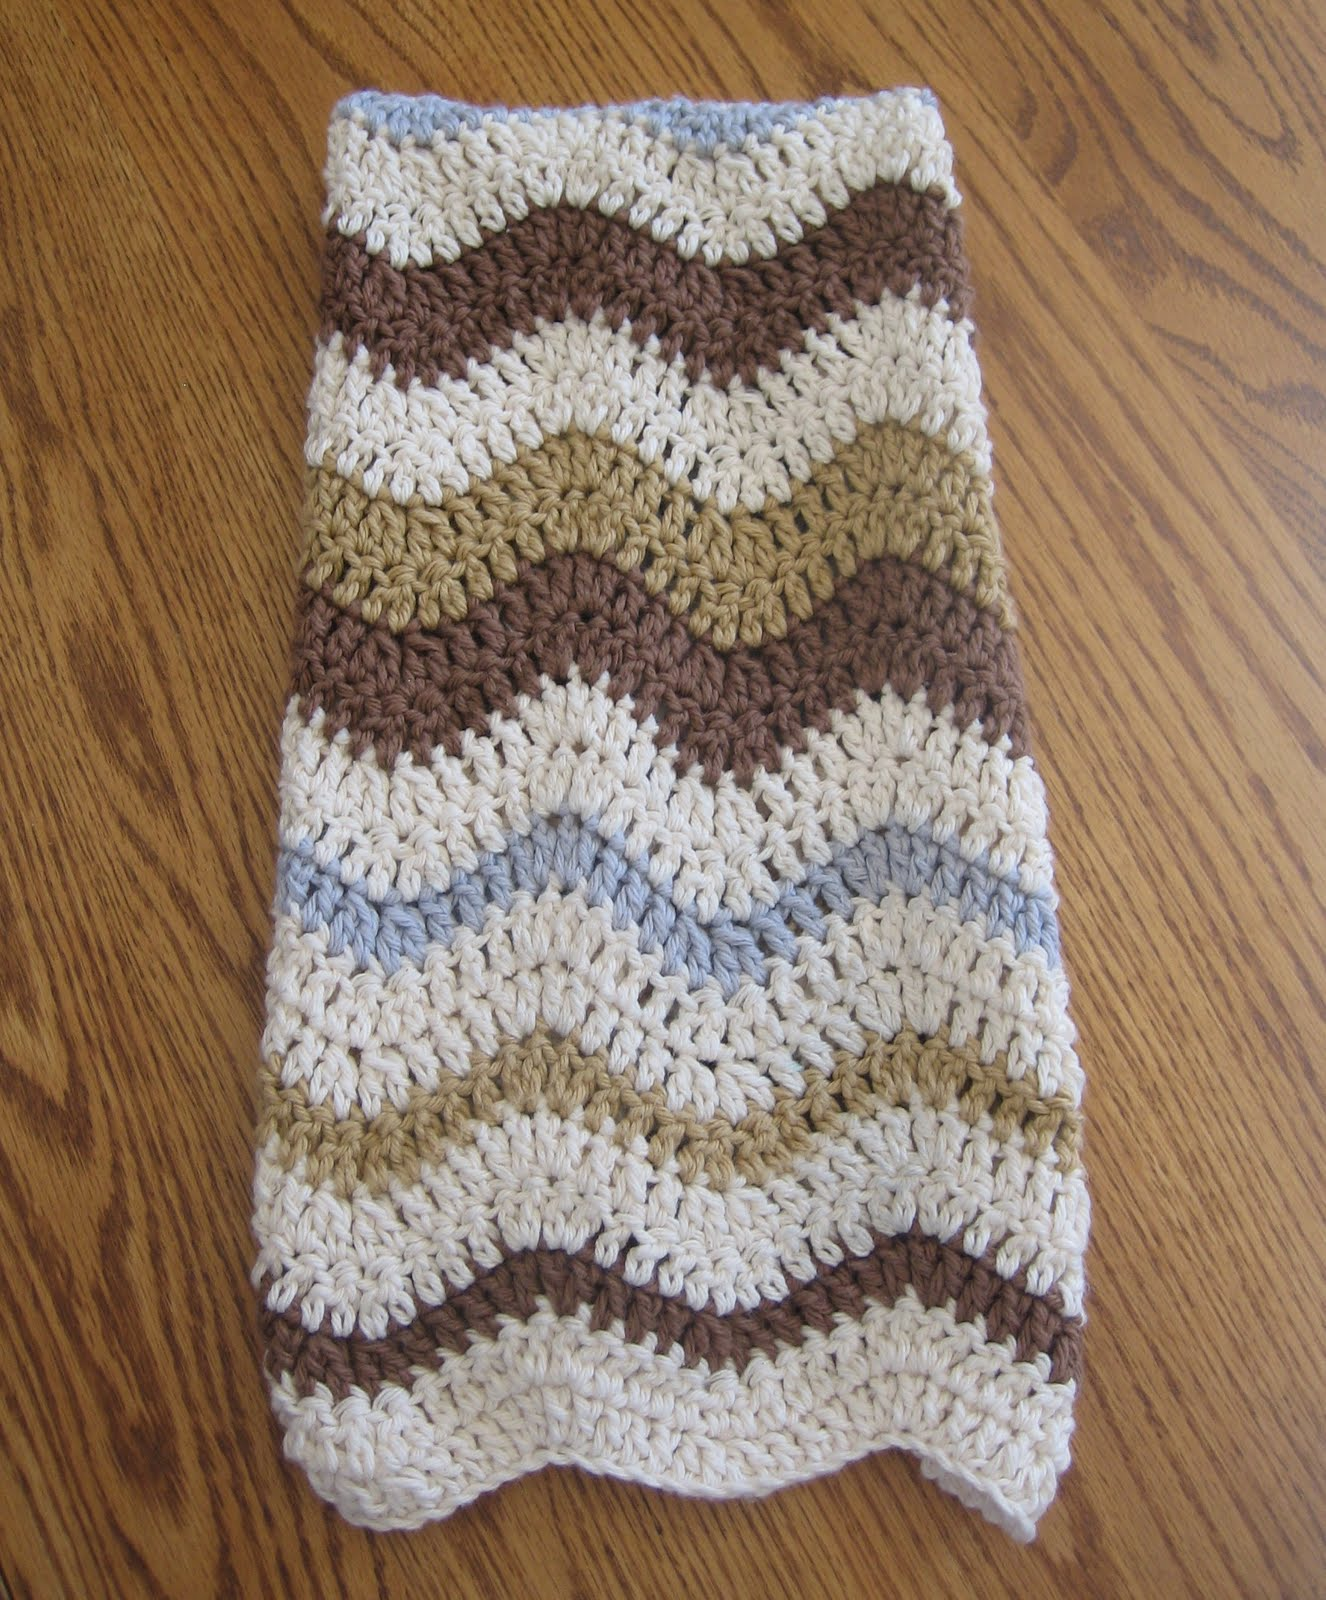 Crochet Dish Towel : FREE CROCHET TOWEL PATTERN FOR THE KITCHEN Crochet Patterns